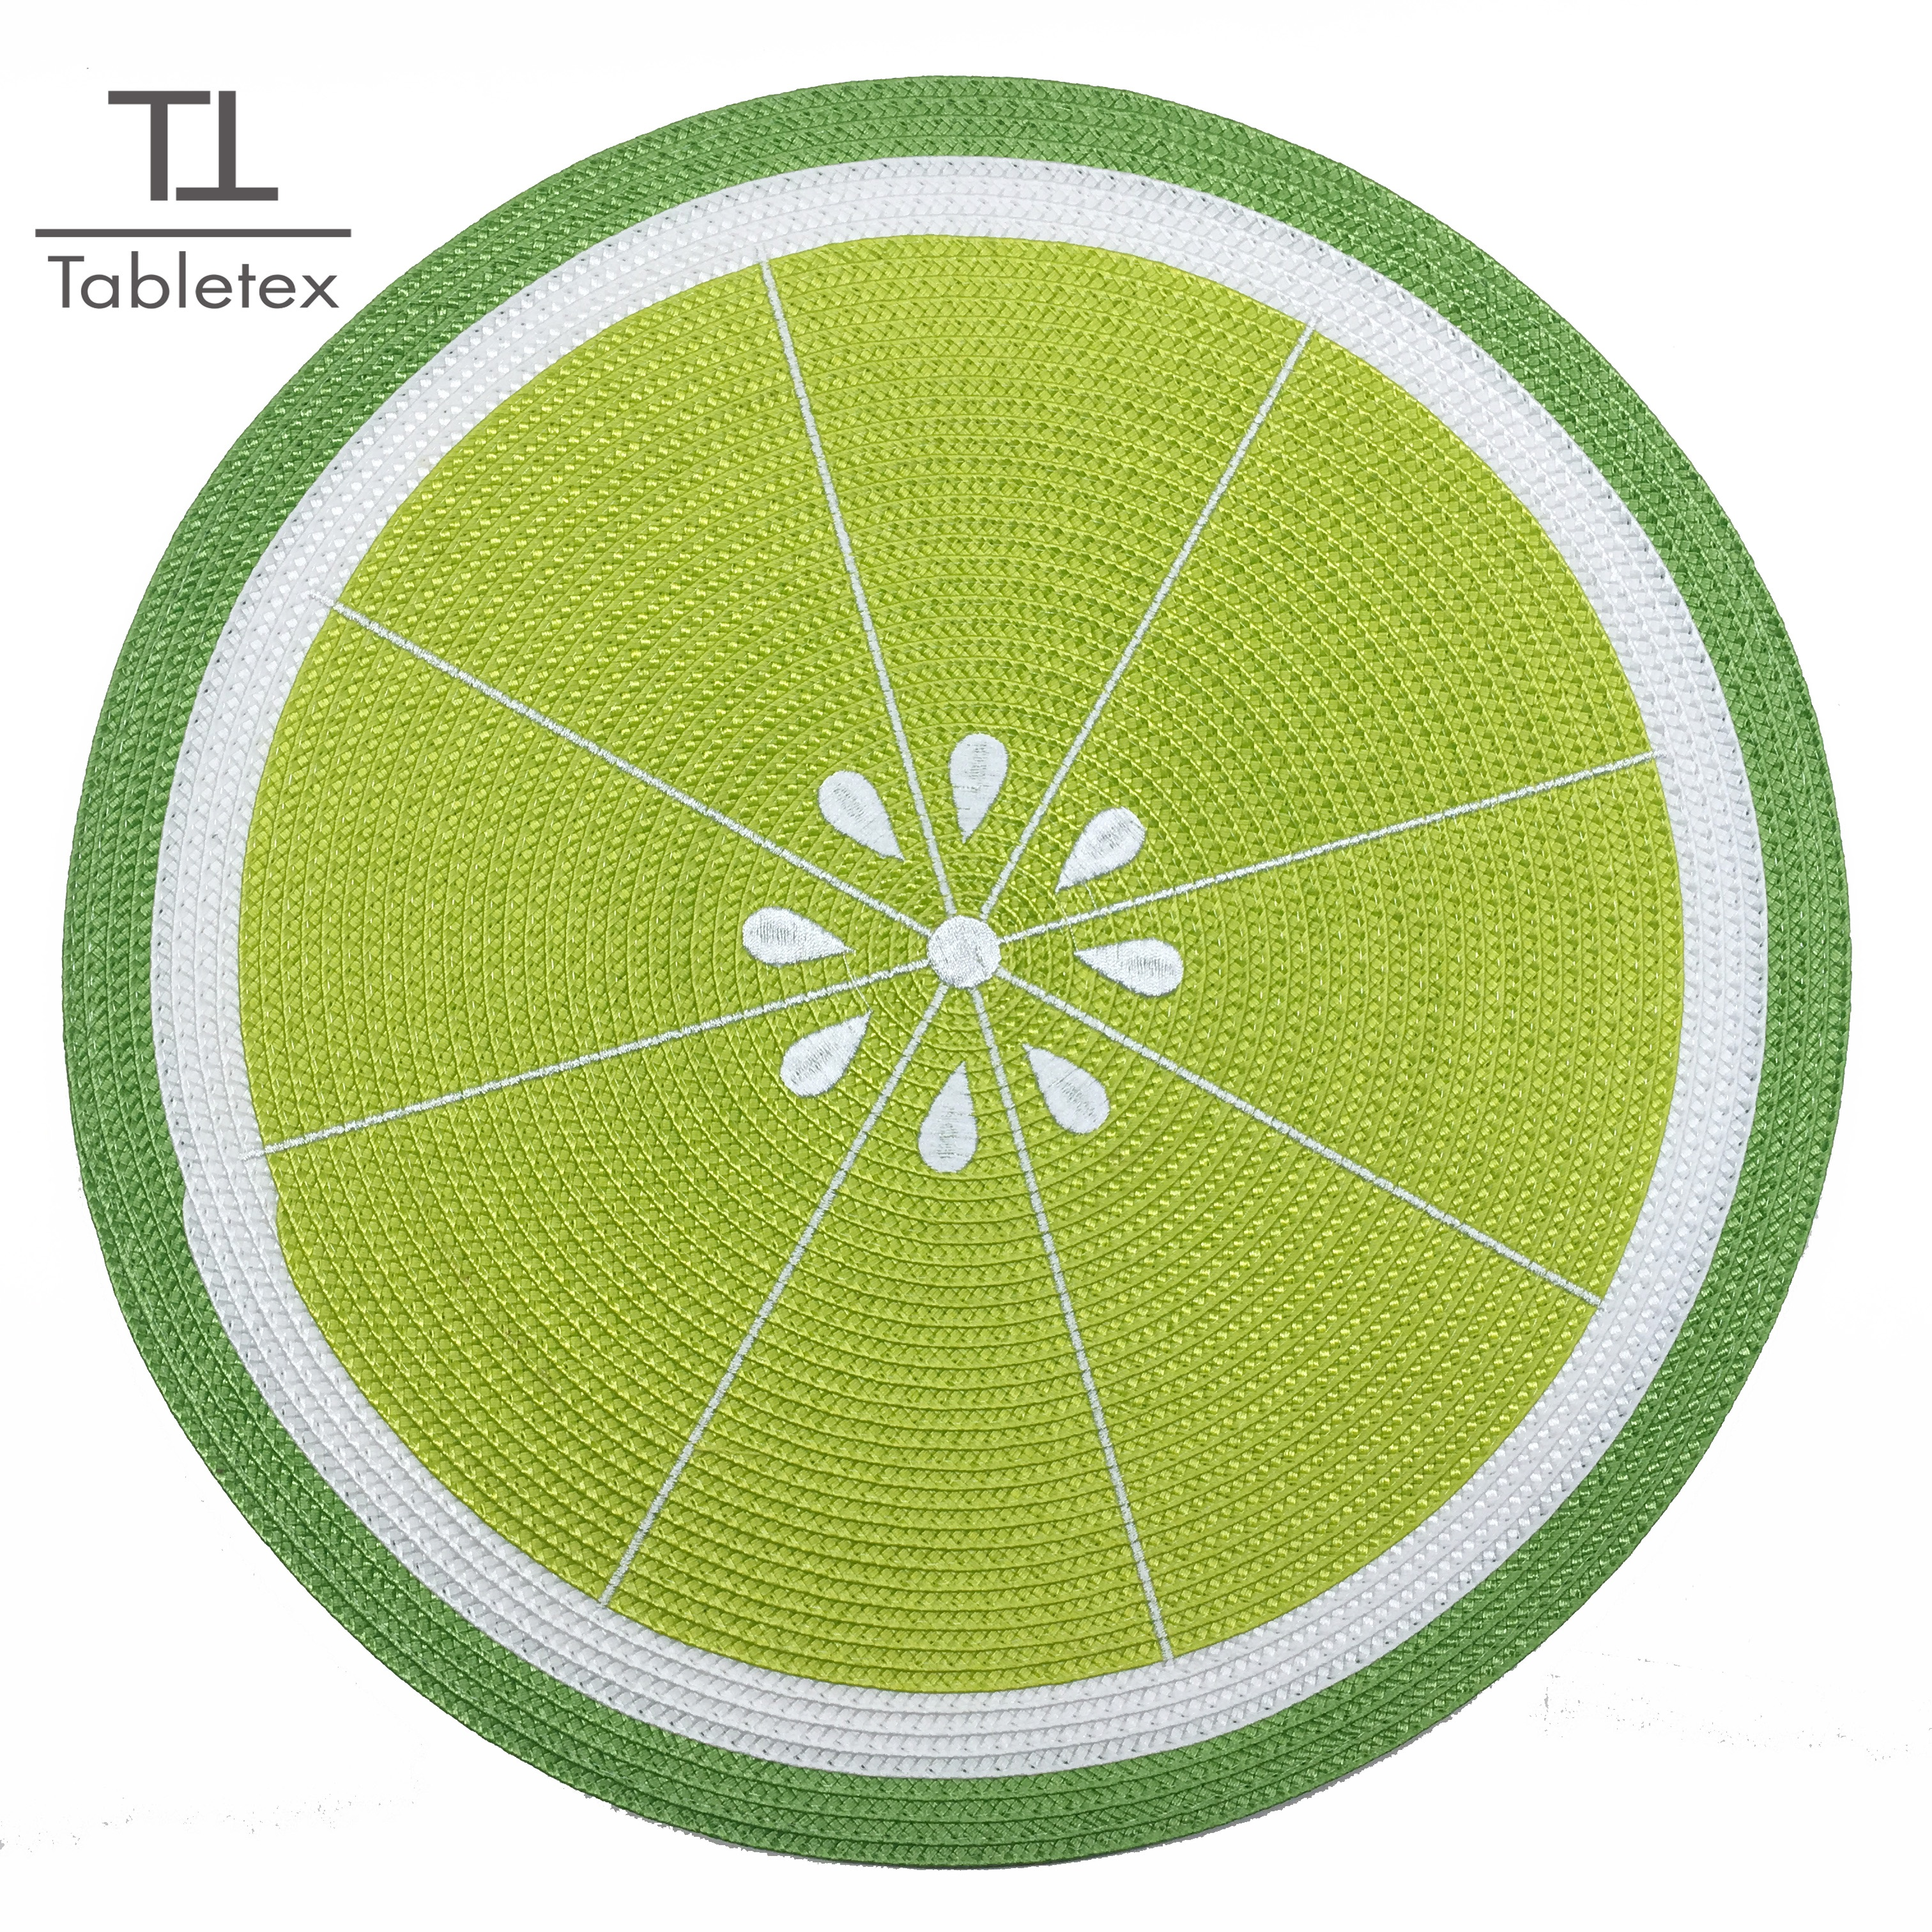 Tabletex lemon style embroidered  placemat polypropylene woven placemat watermelon mat